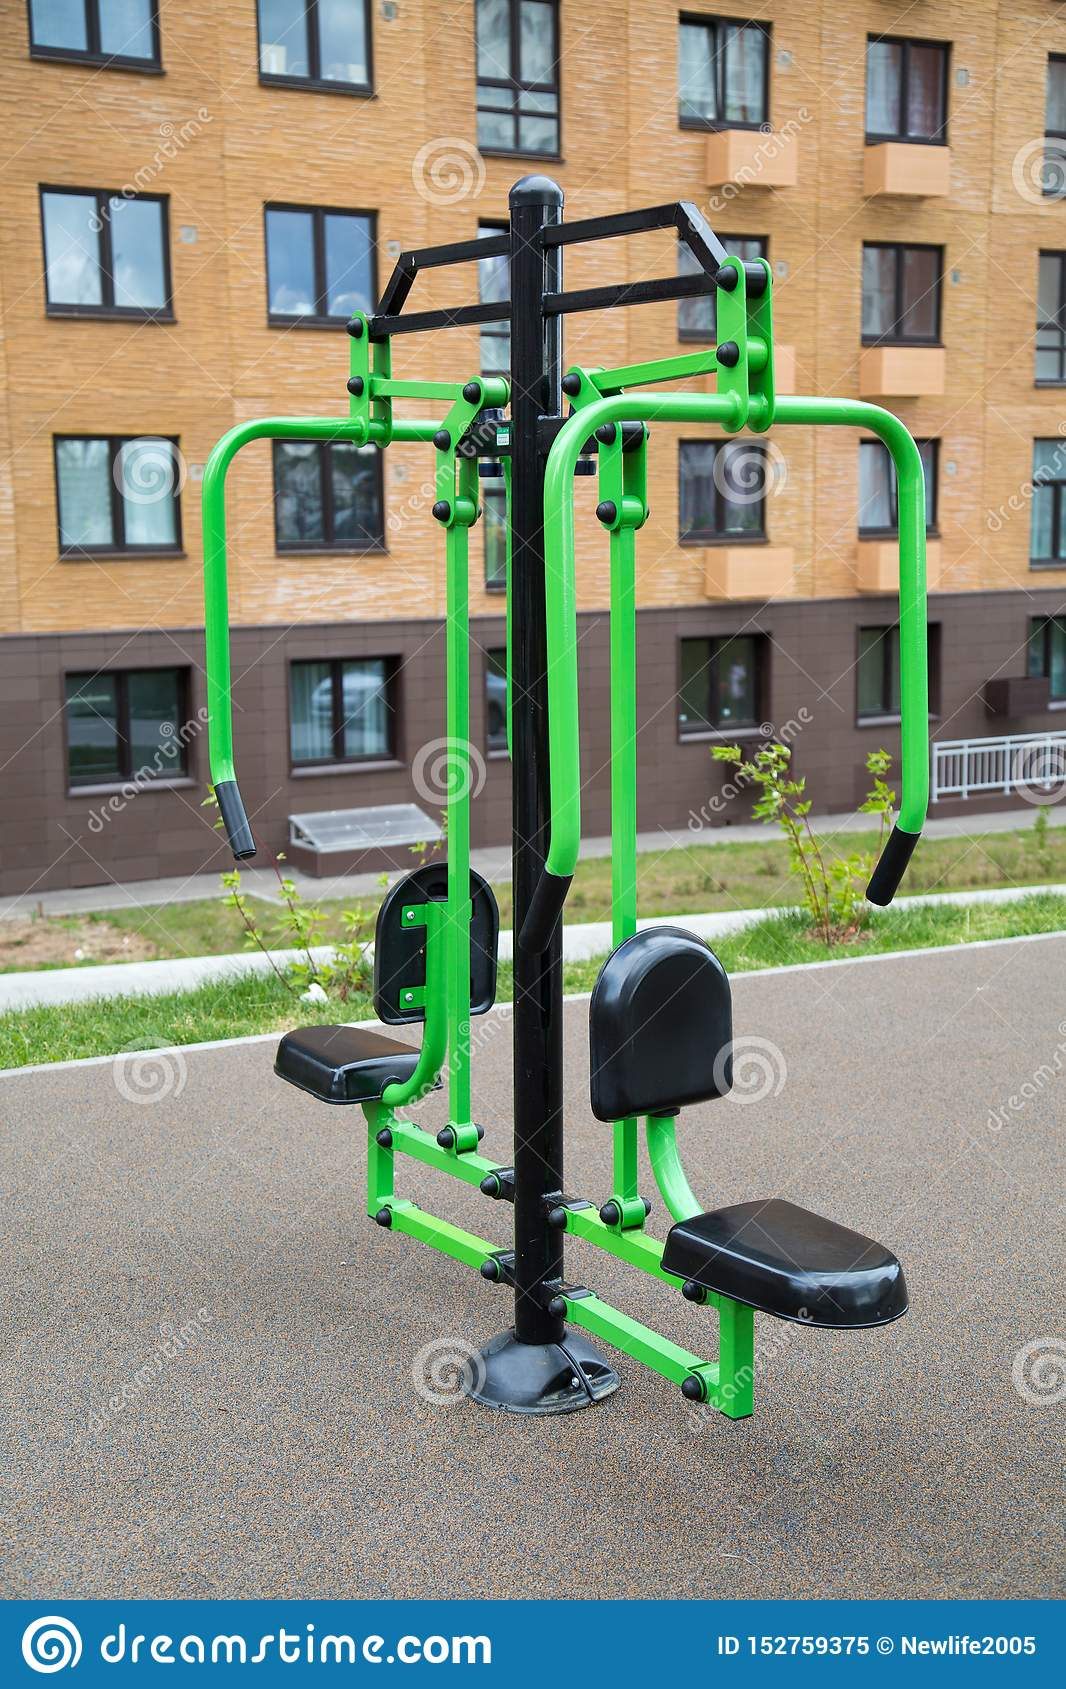 Power trainer for hand muscles made of metal on the Playground in the city outdoors. Sport is a healthy